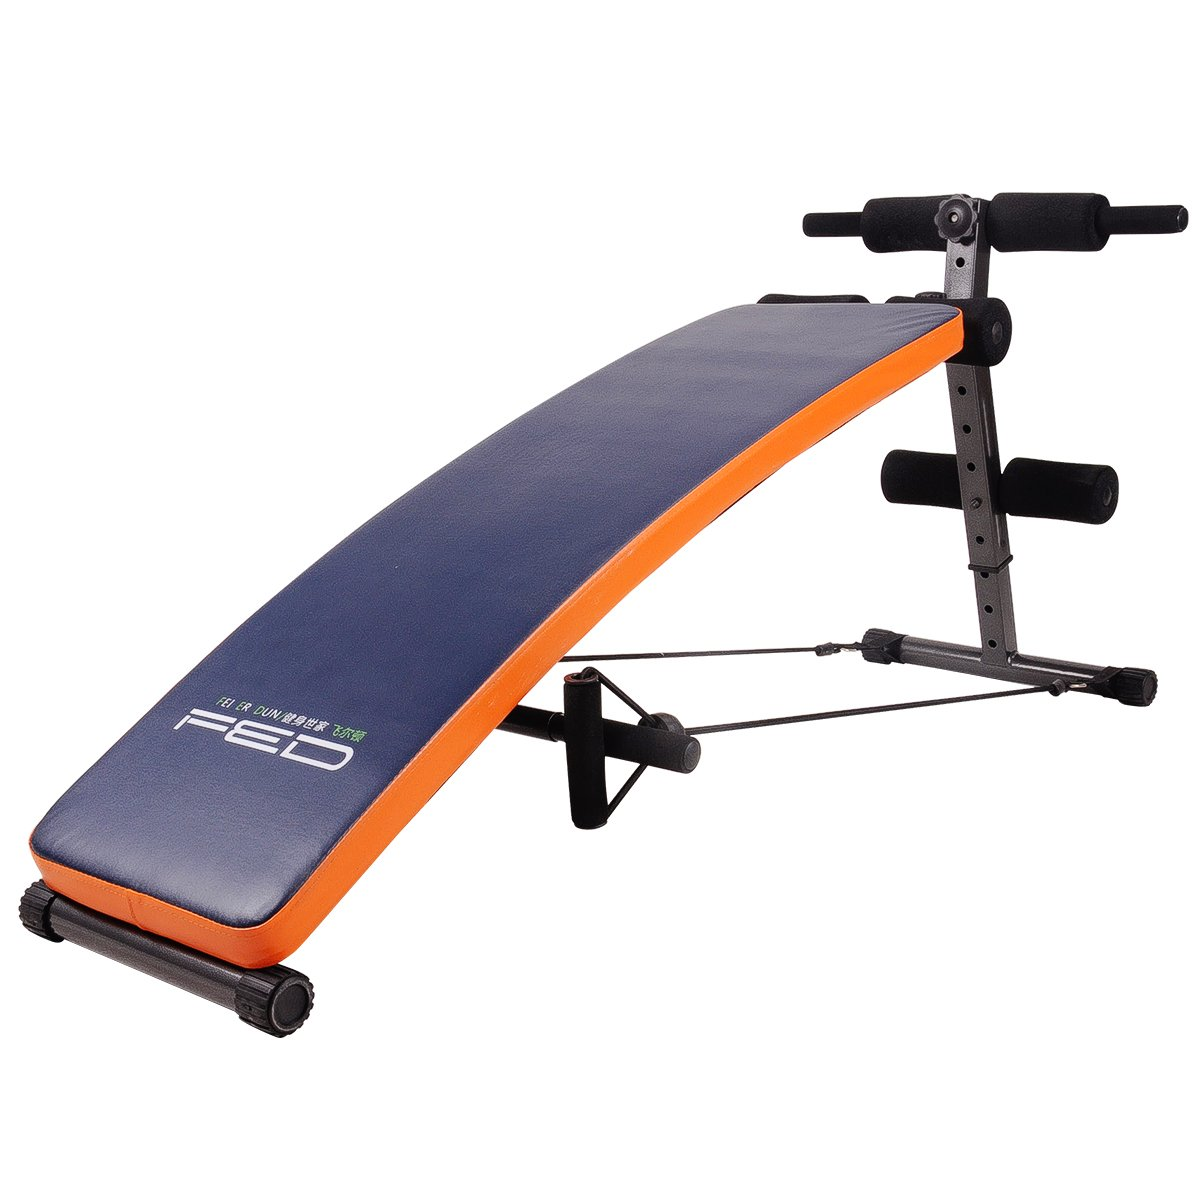 ab sit up bench folding home abdominal crunch workout